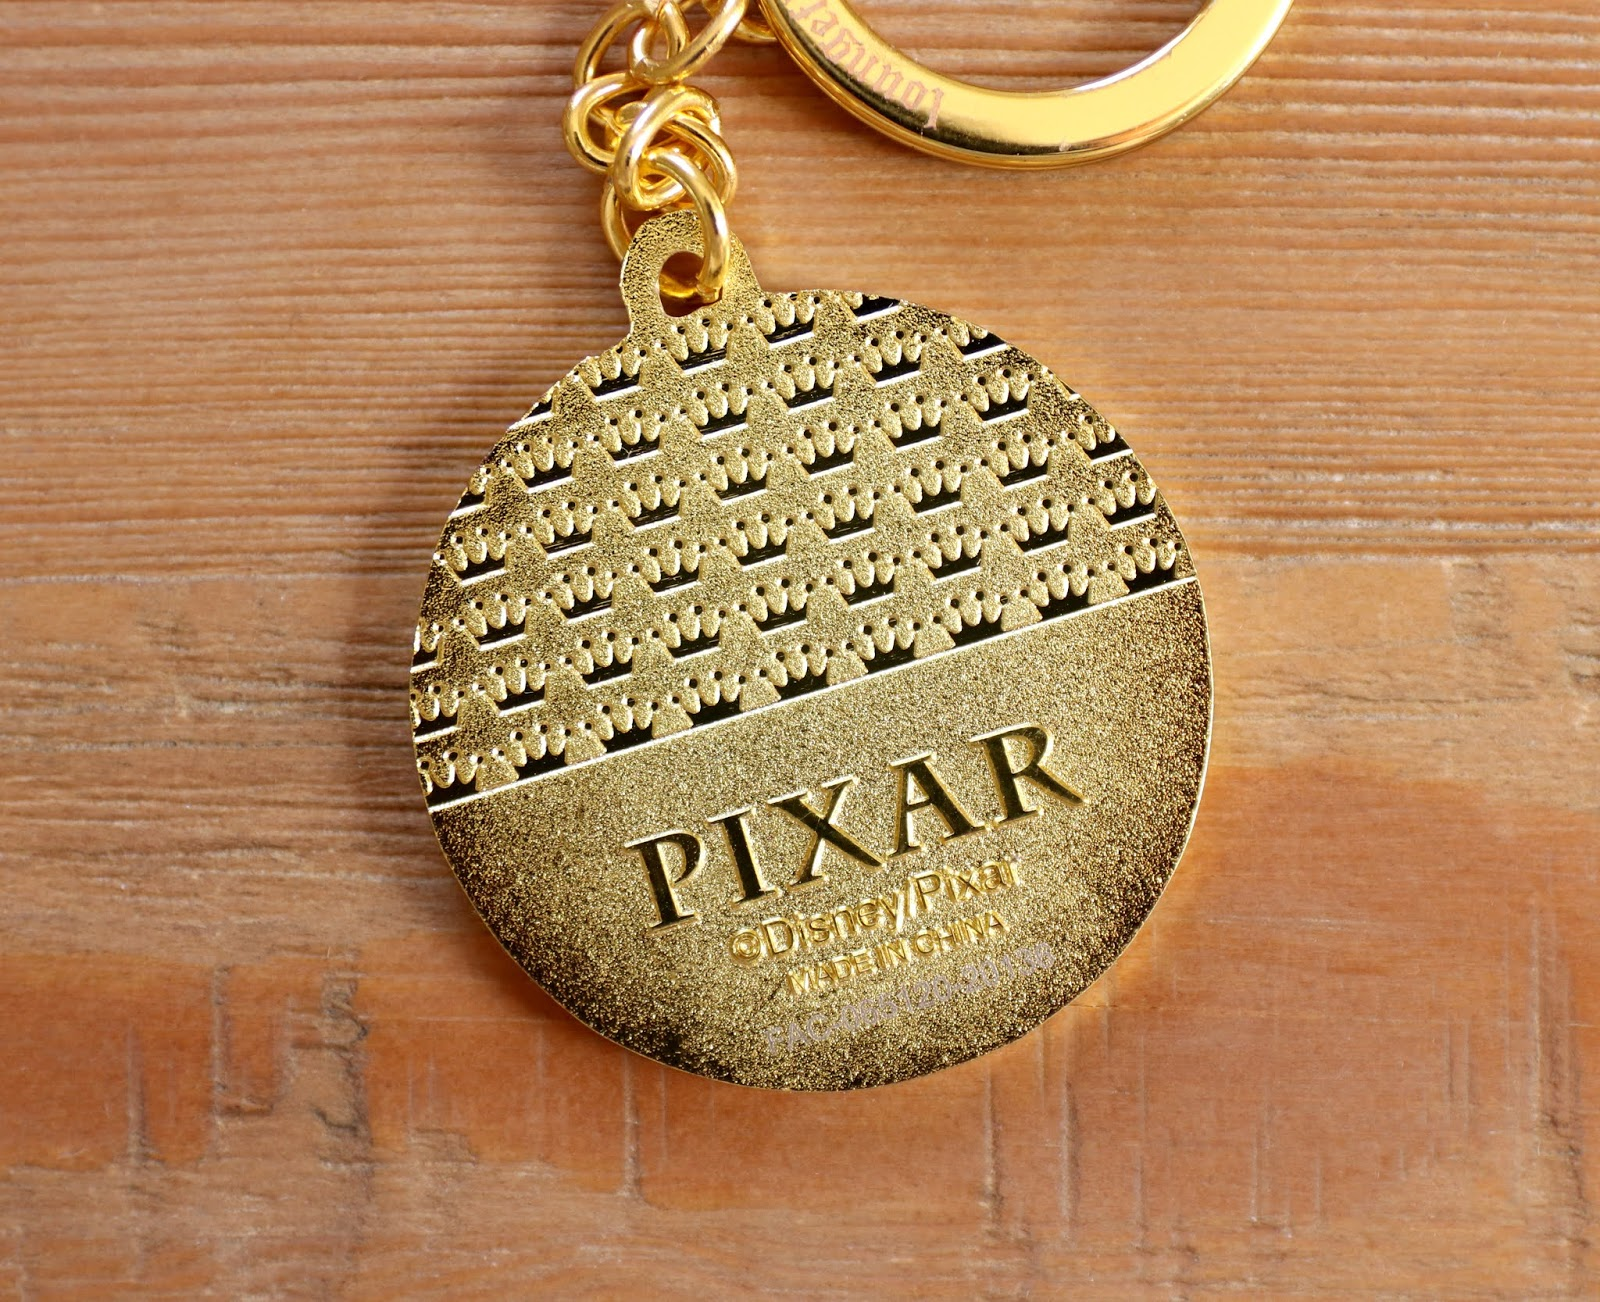 pixar ball loungefly boxlunch keychain